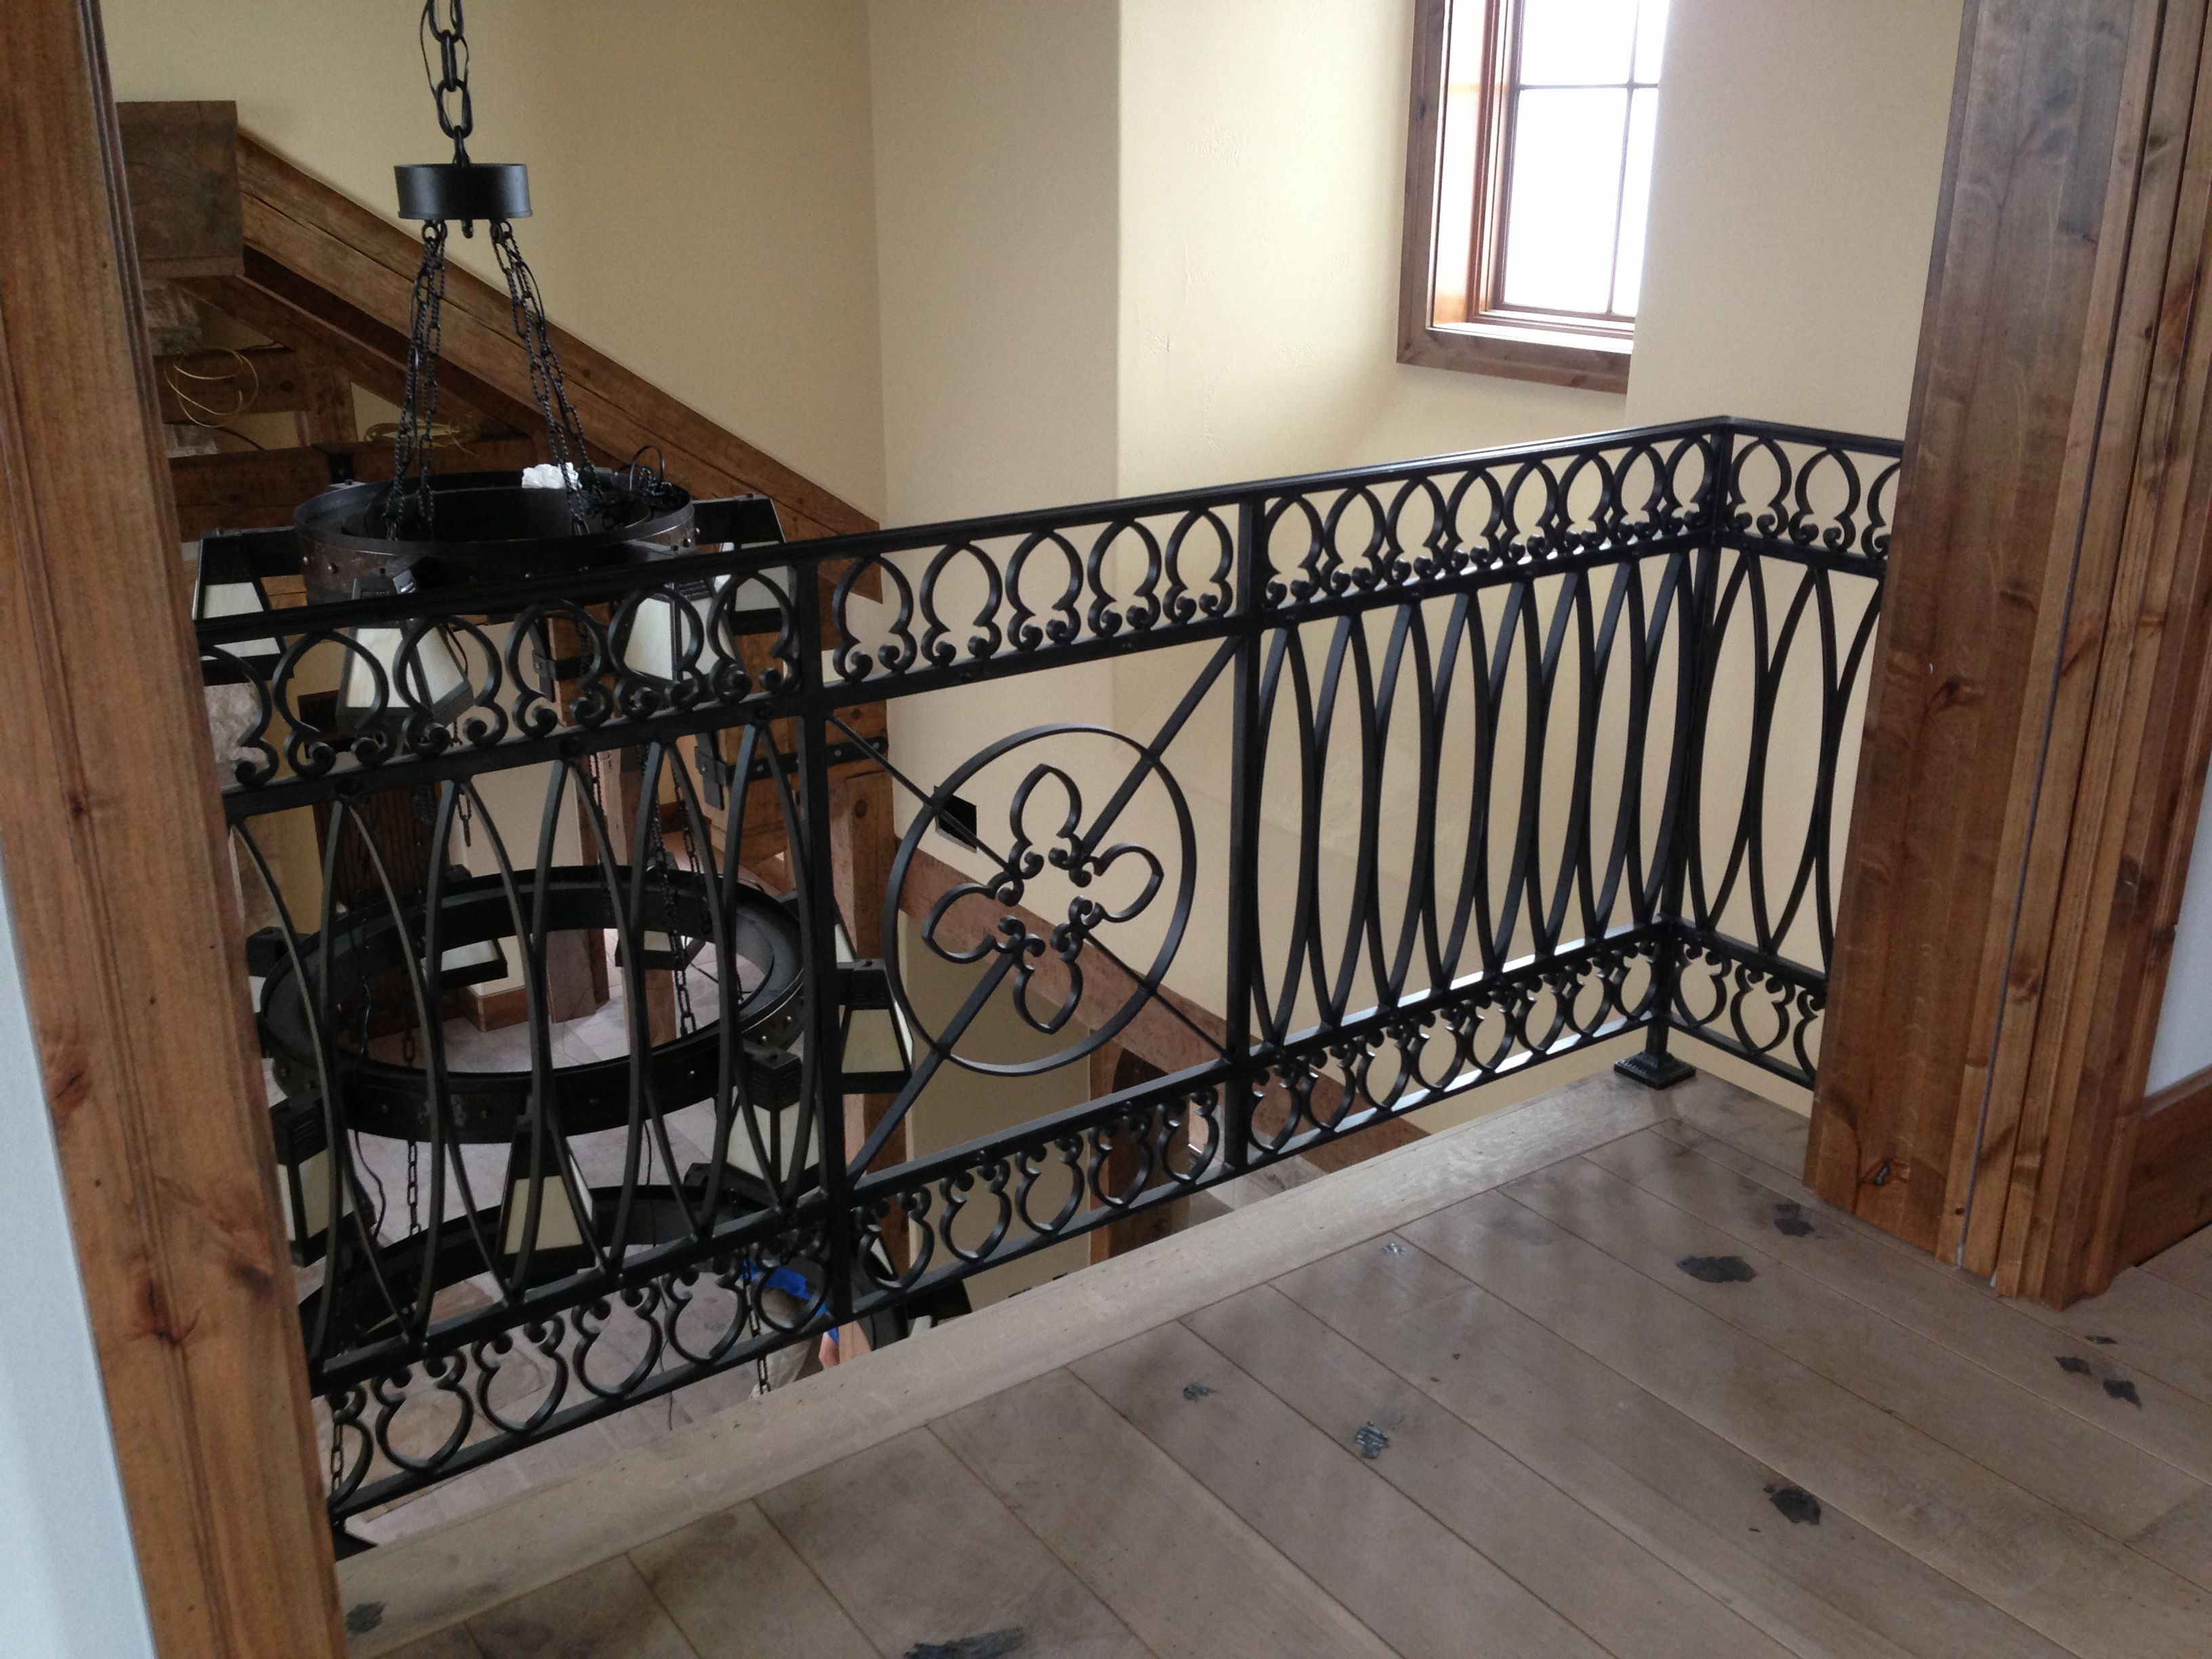 Custom Wrought Iron Interior Railing With Oval Pickets, Scroll Work, And  Decorative Centerpiece.